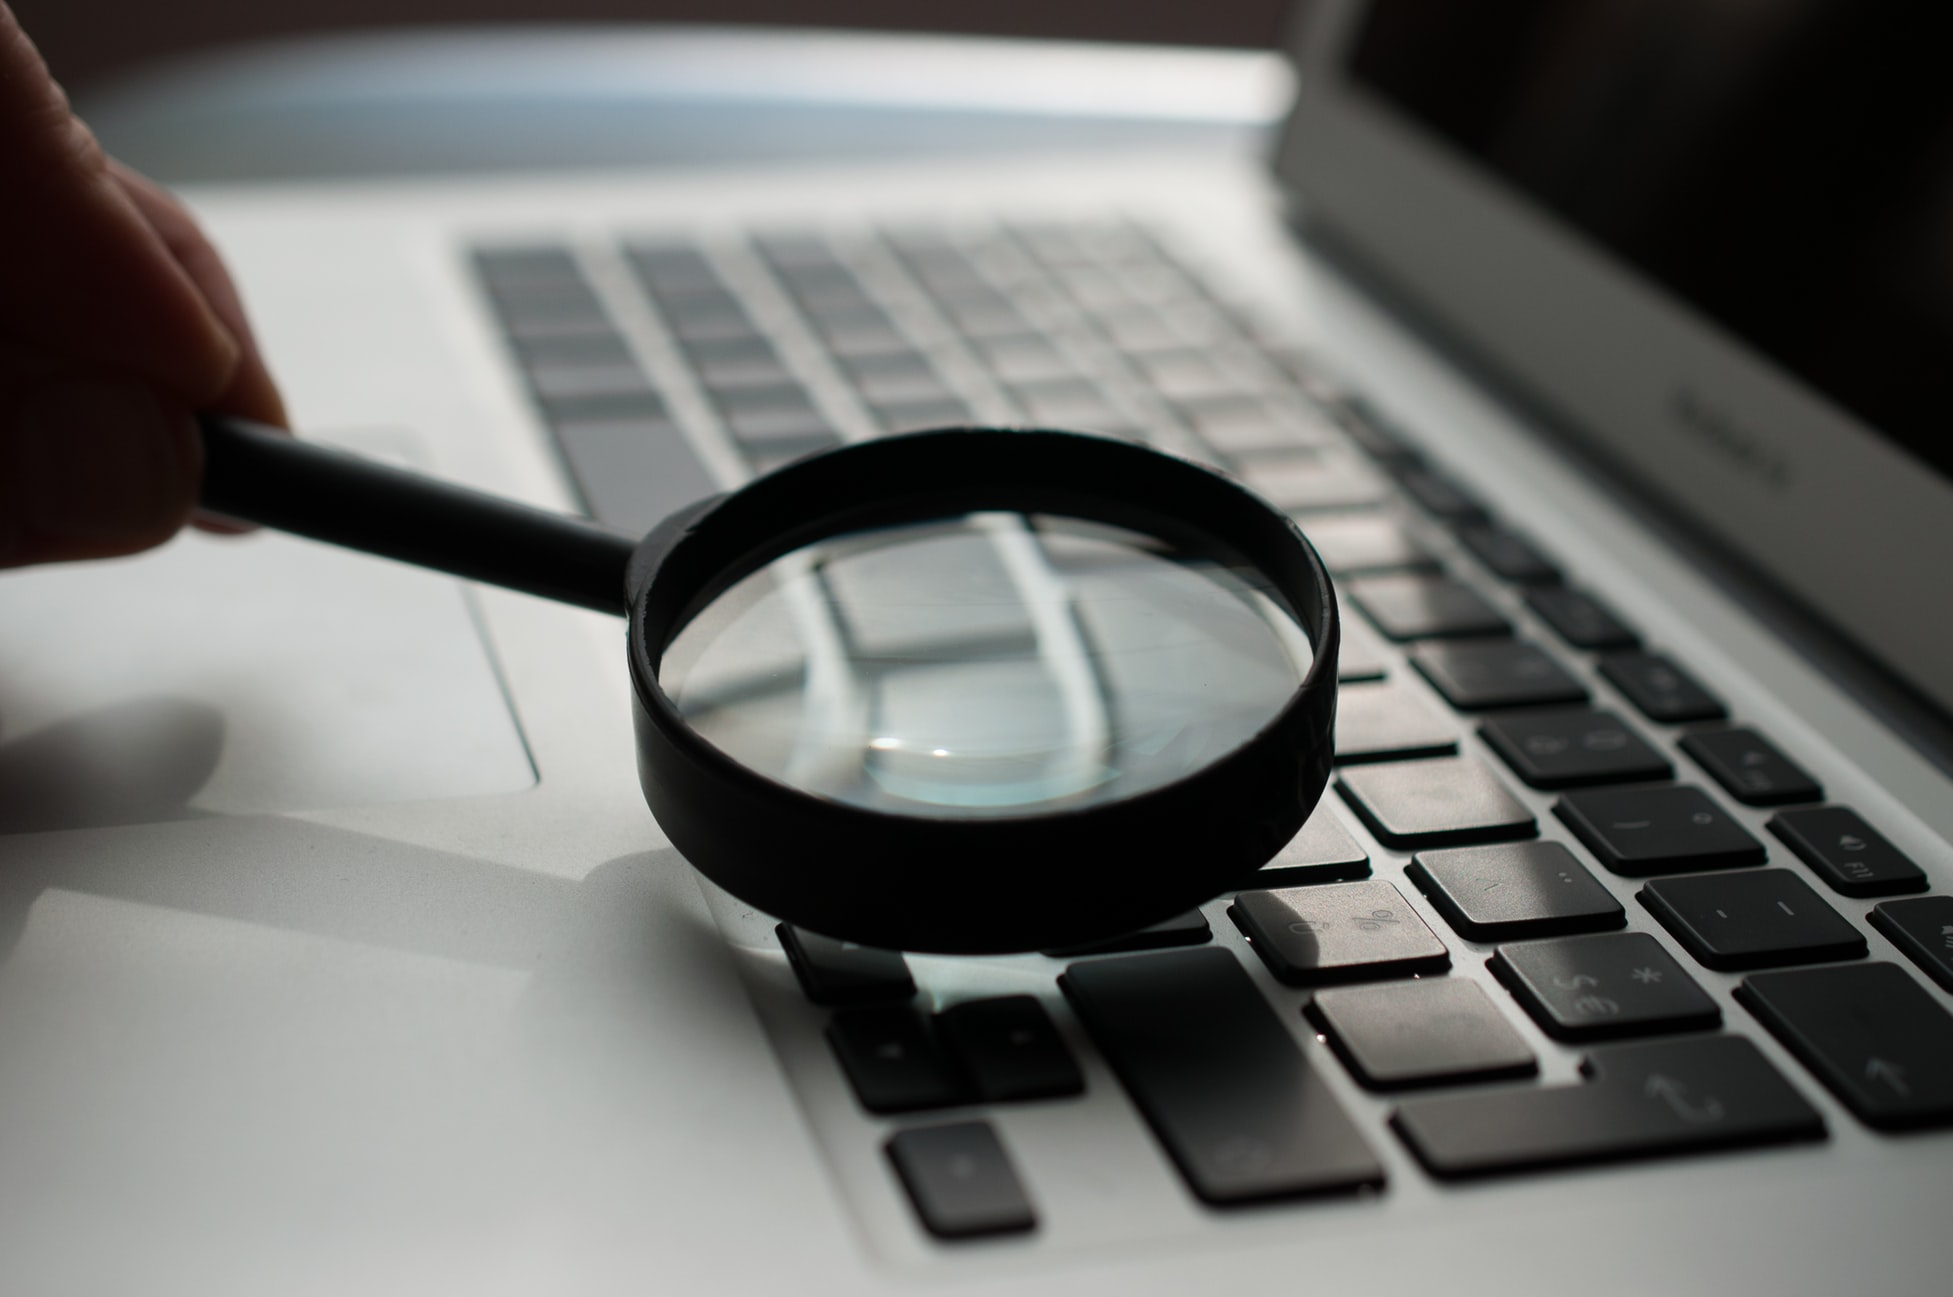 A picture of a magnifying glass over a keyboard